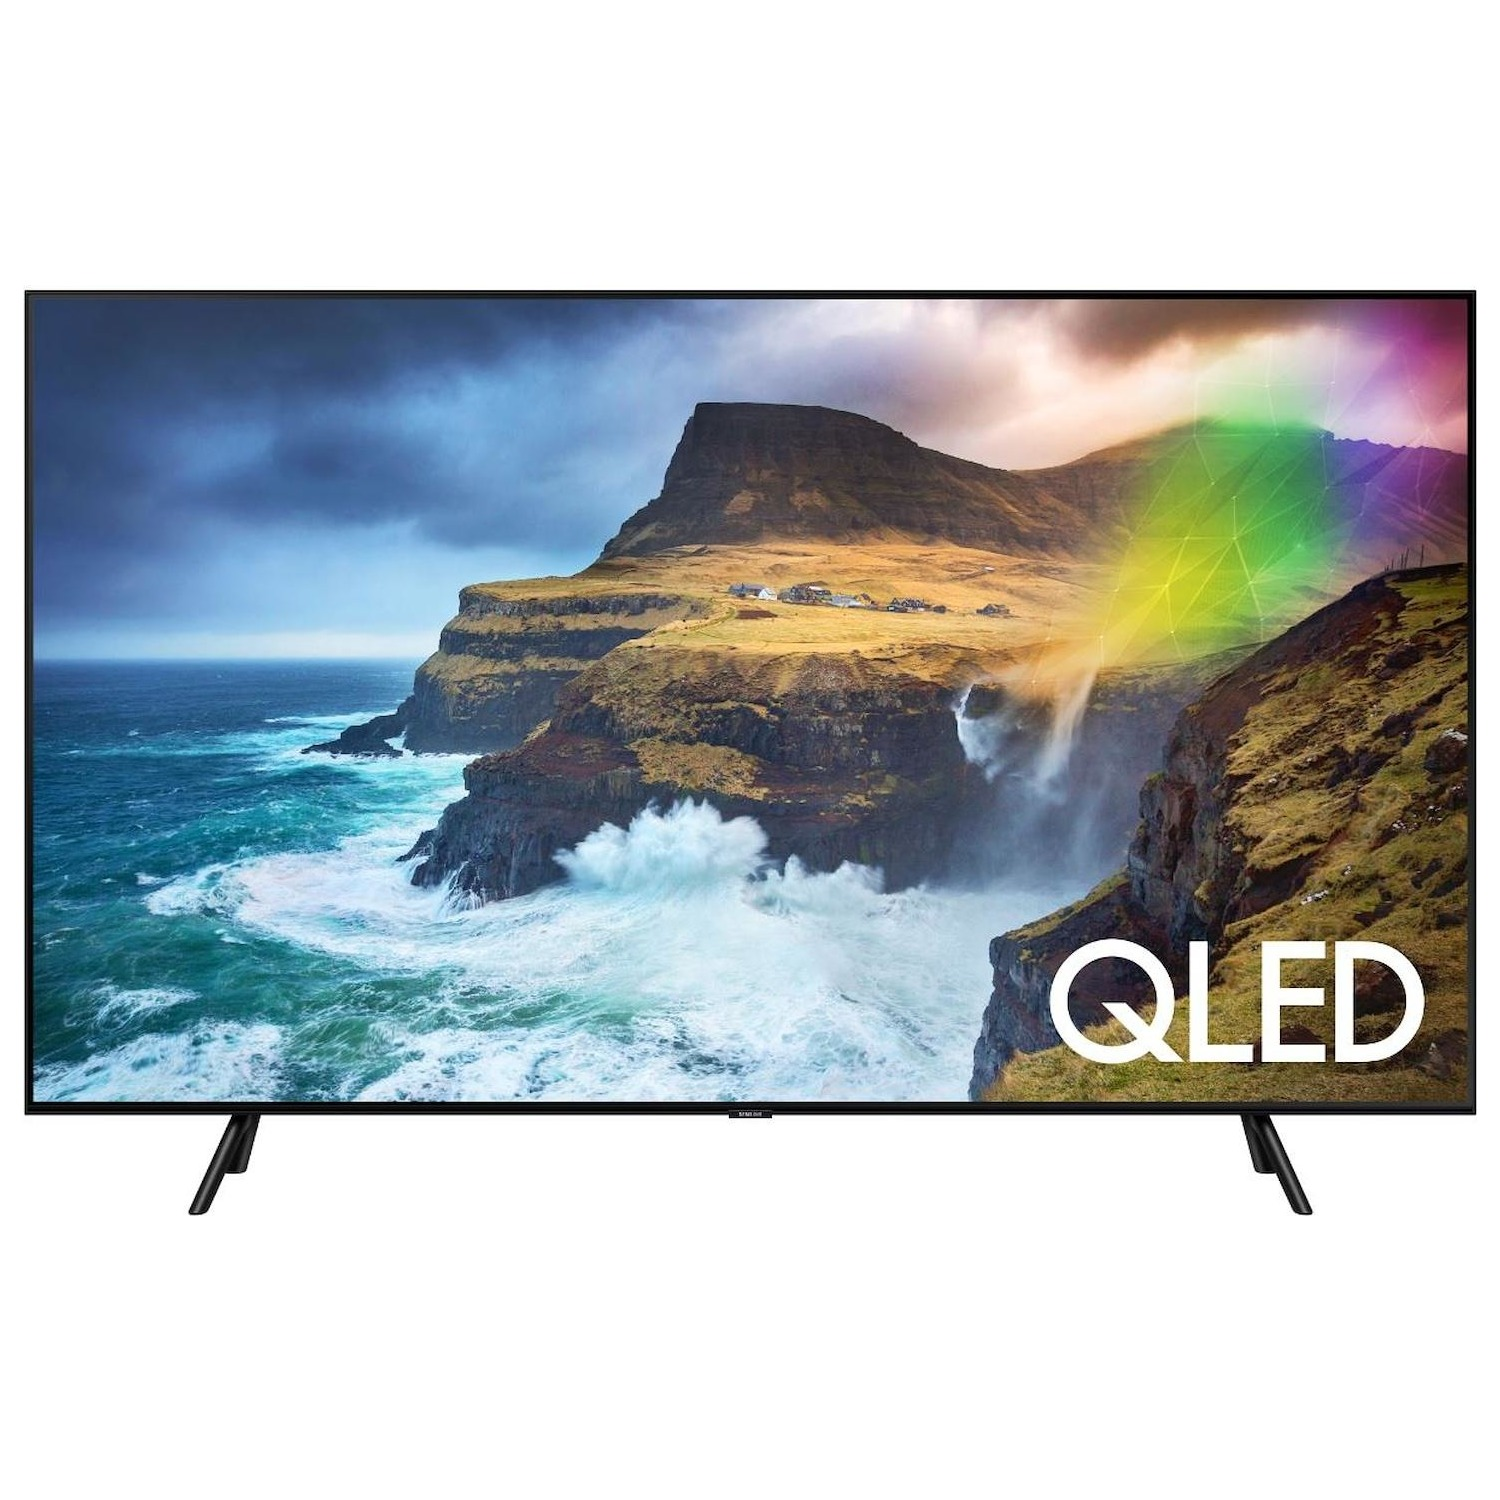 Immagine per TV LED 4K UHD Smart Samsung 49Q70RAT da DIMOStore